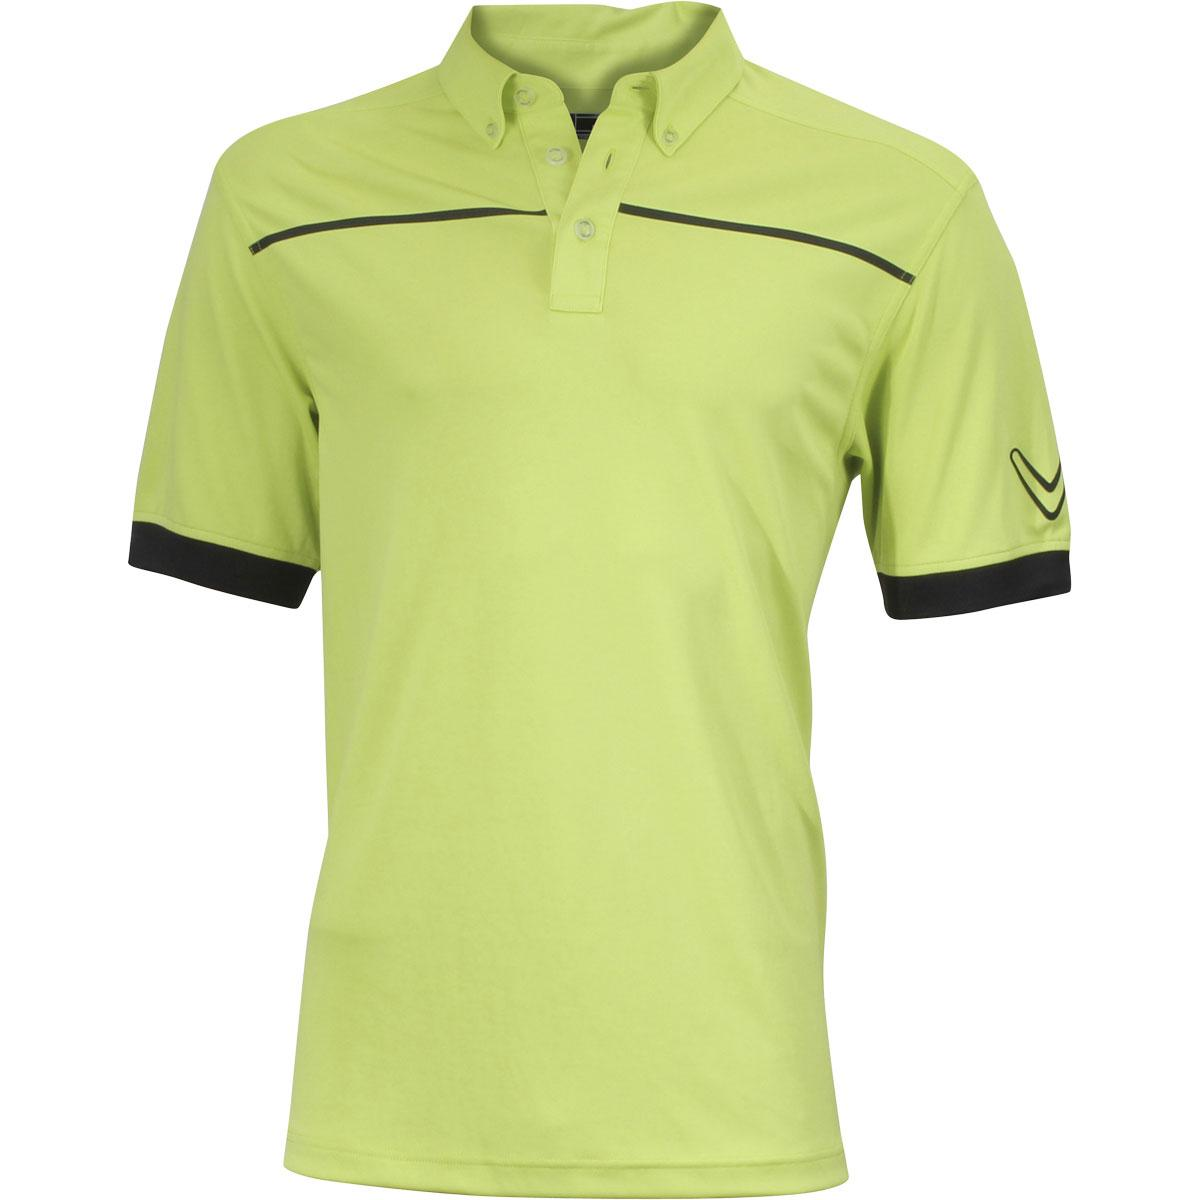 Image of Callaway Men's Engineered Stripe Polo Short Sleeve Shirt - Wild Lime - Classic Fit